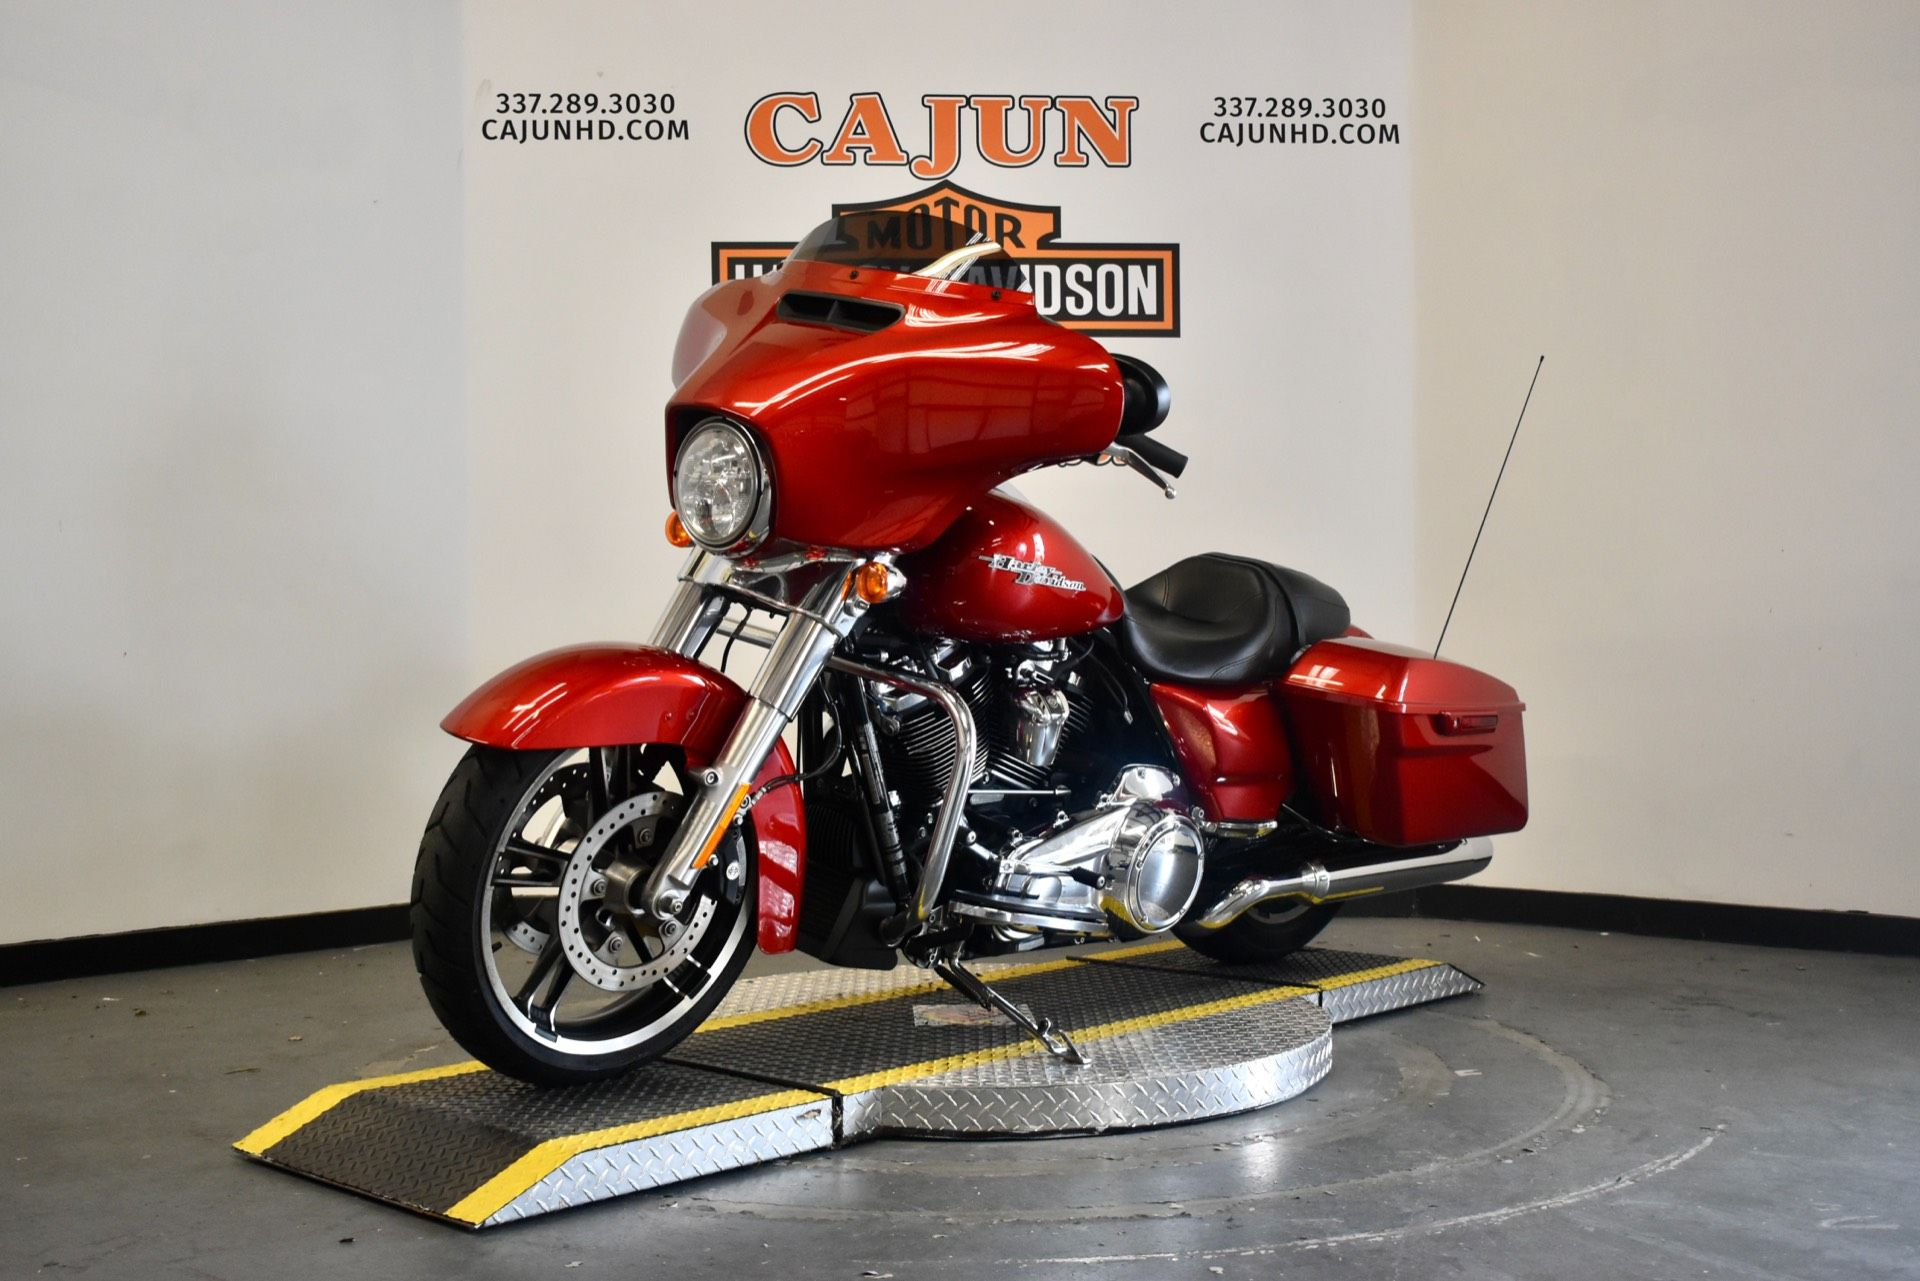 used wicked red street glide for sale - Photo 5